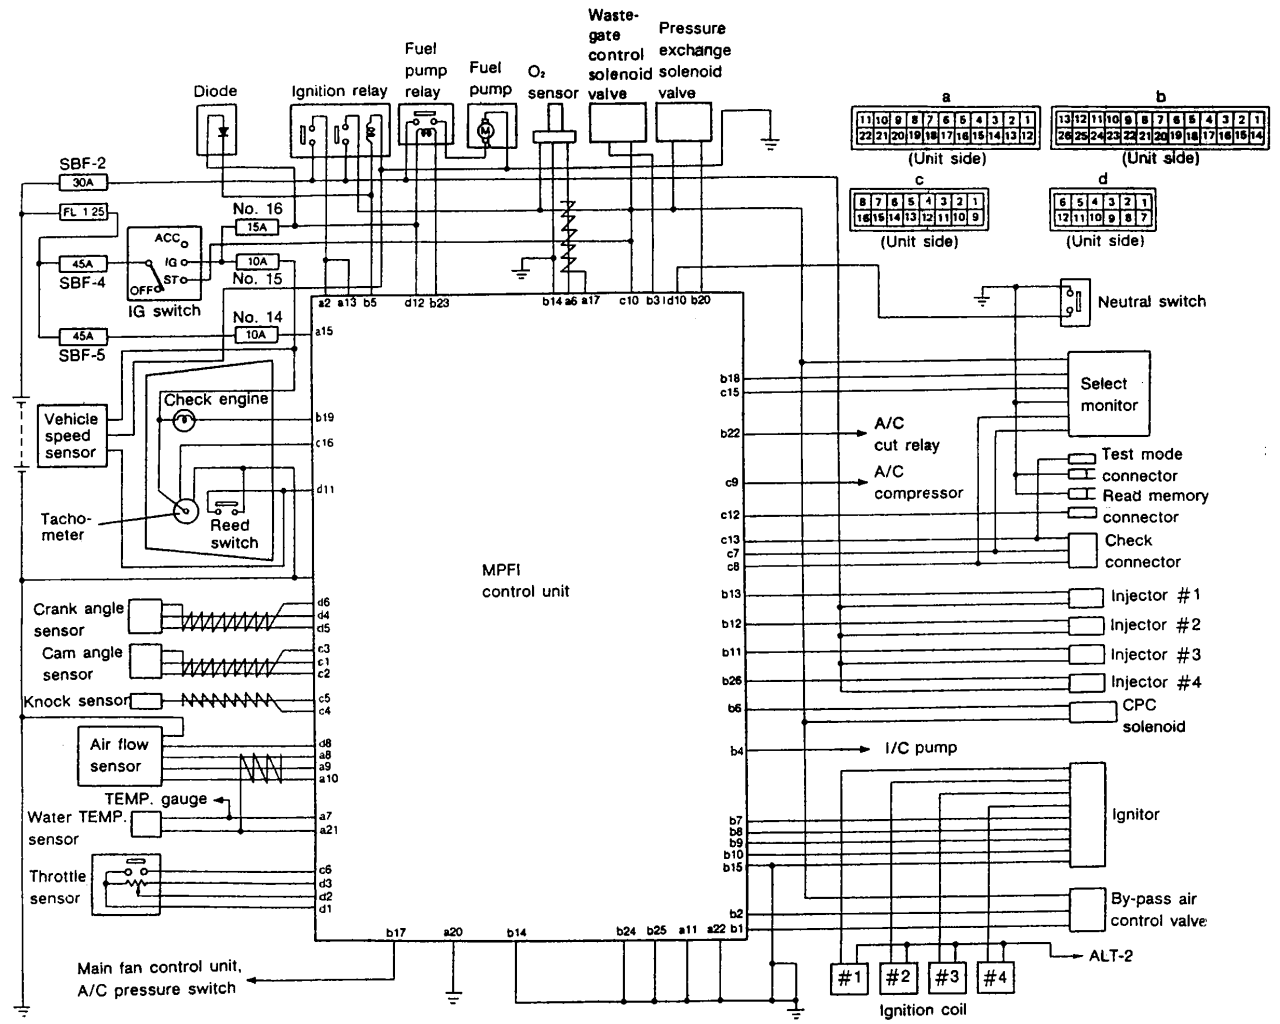 Saturn Aura Parts Diagrams further odicis likewise Usb System Diagram also 2000 Gmc Sierra 1500 Wiring Diagram moreover 2005 Mercedes C240 Wiring Diagram Html. on nissan radio wiring harness diagram